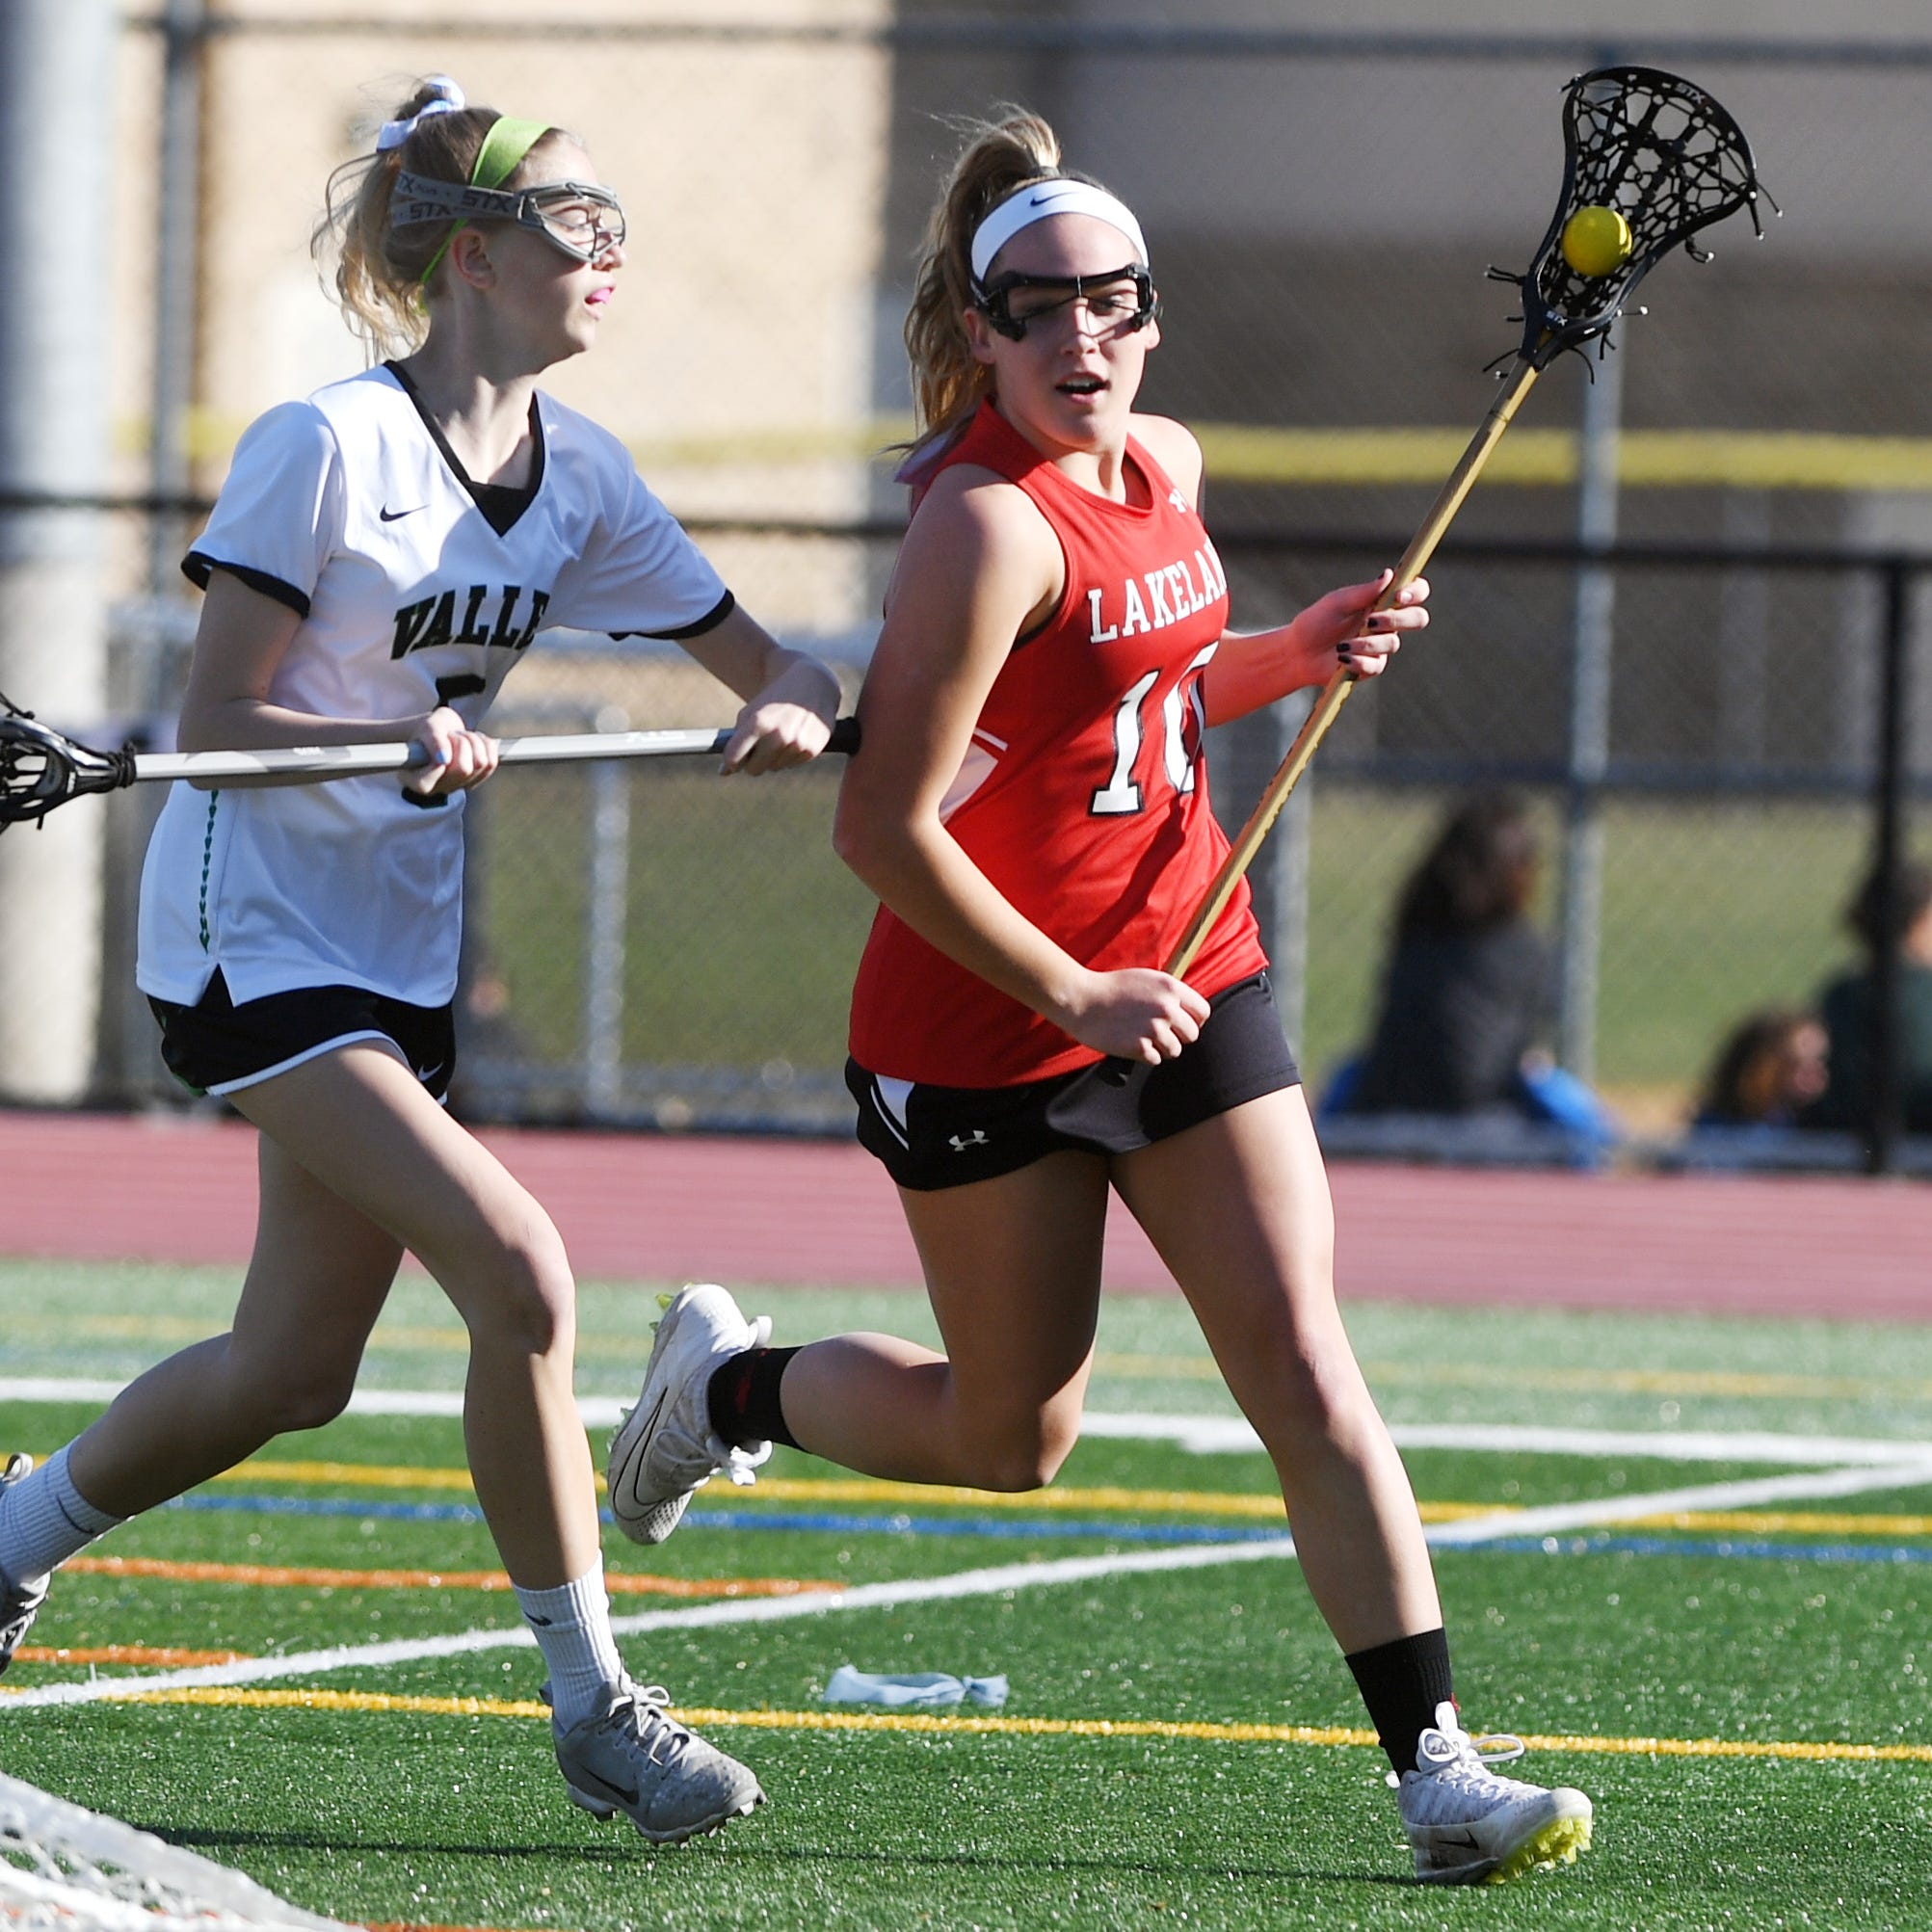 Lakeland girls lacrosse at Pascack Valley on Wednesday, April 3, 2019. L #10 Devyn Tanajewski tries to get past PV #5 Kelly Andreasen.